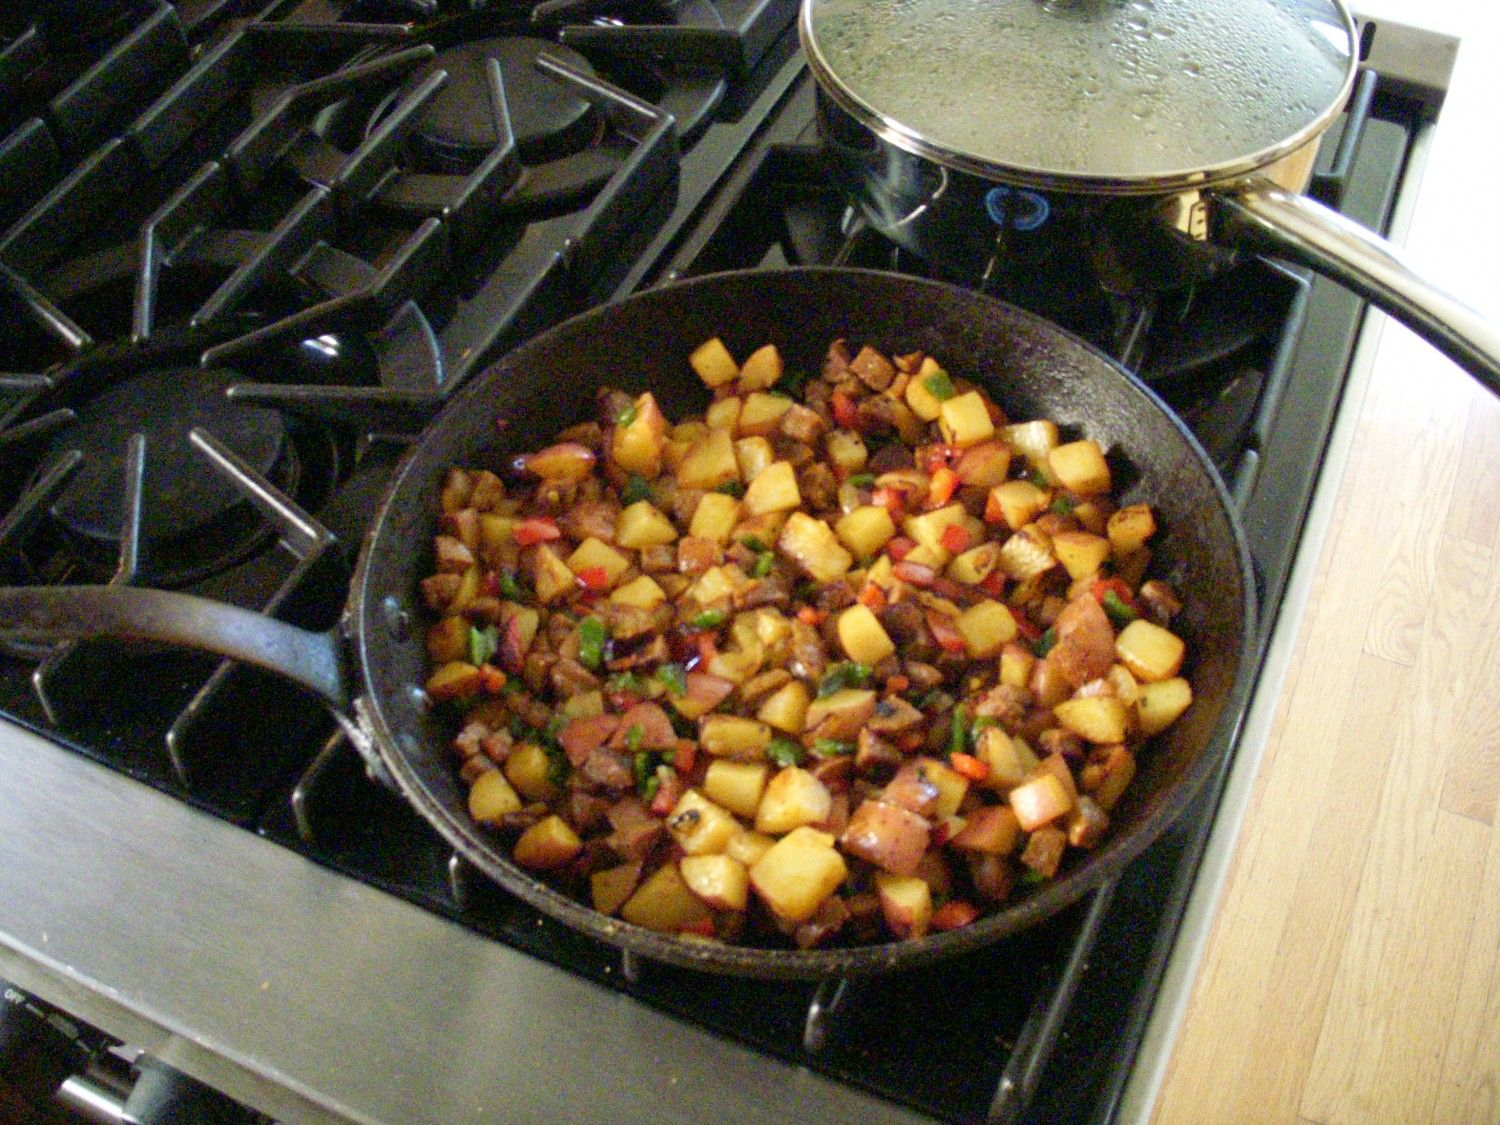 Spanish Hash Brunch Dish Recipe (With images) Brunch